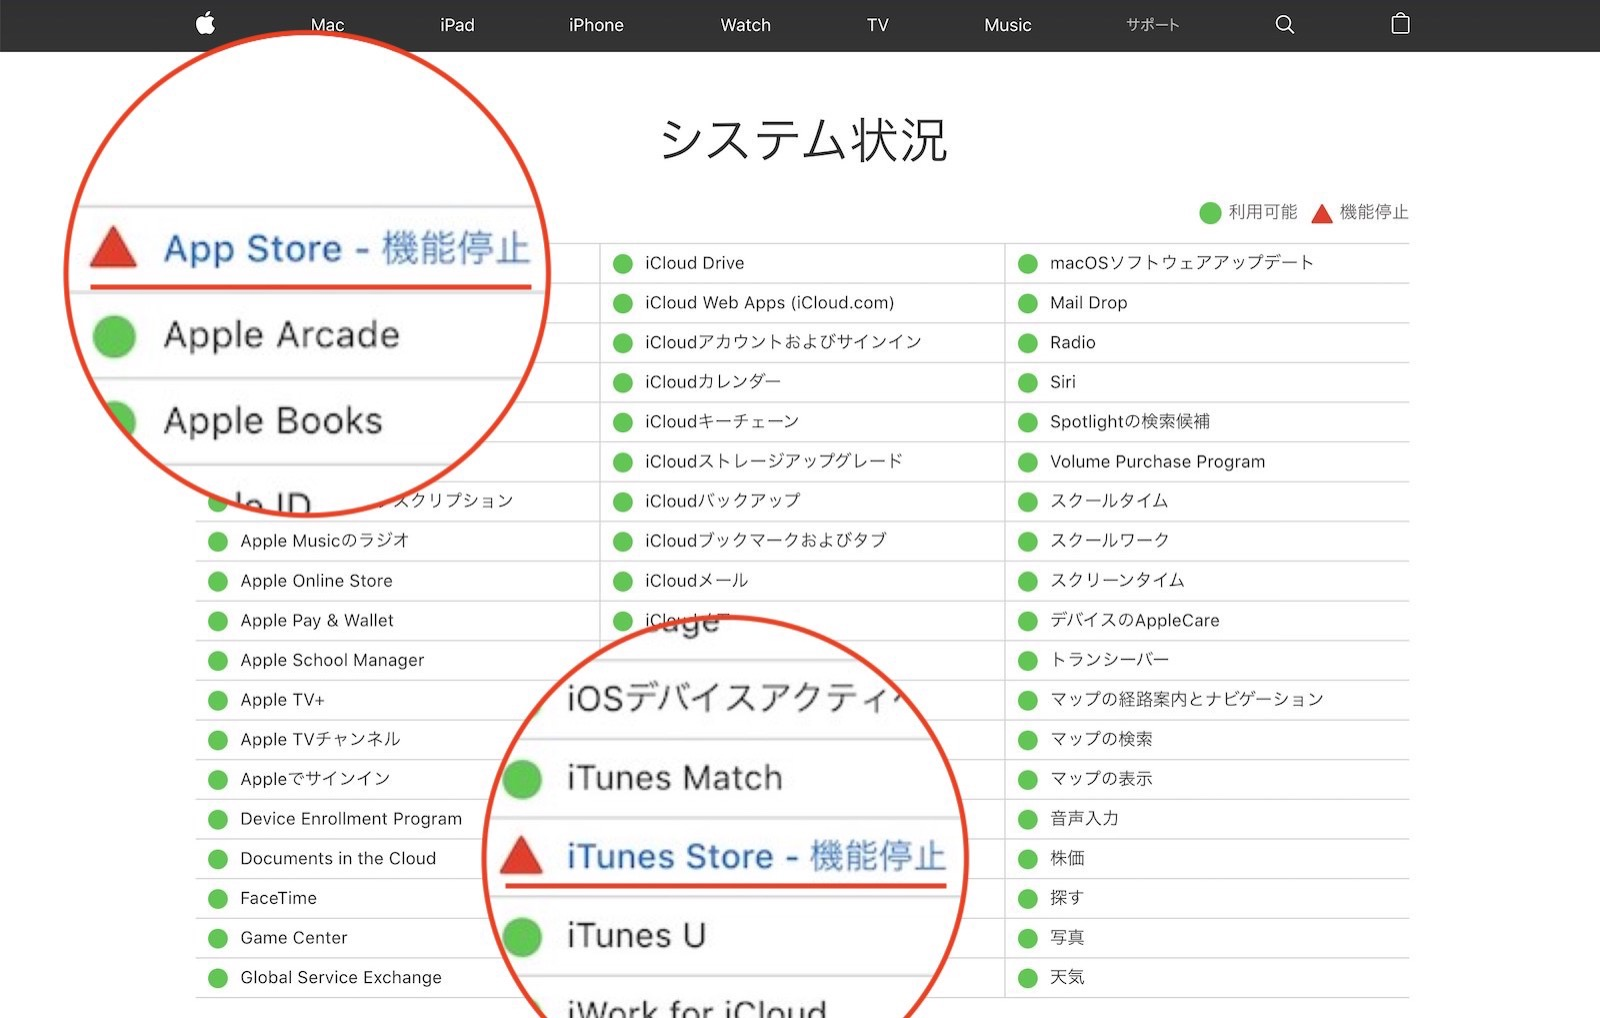 App Store and iTunes Store is down